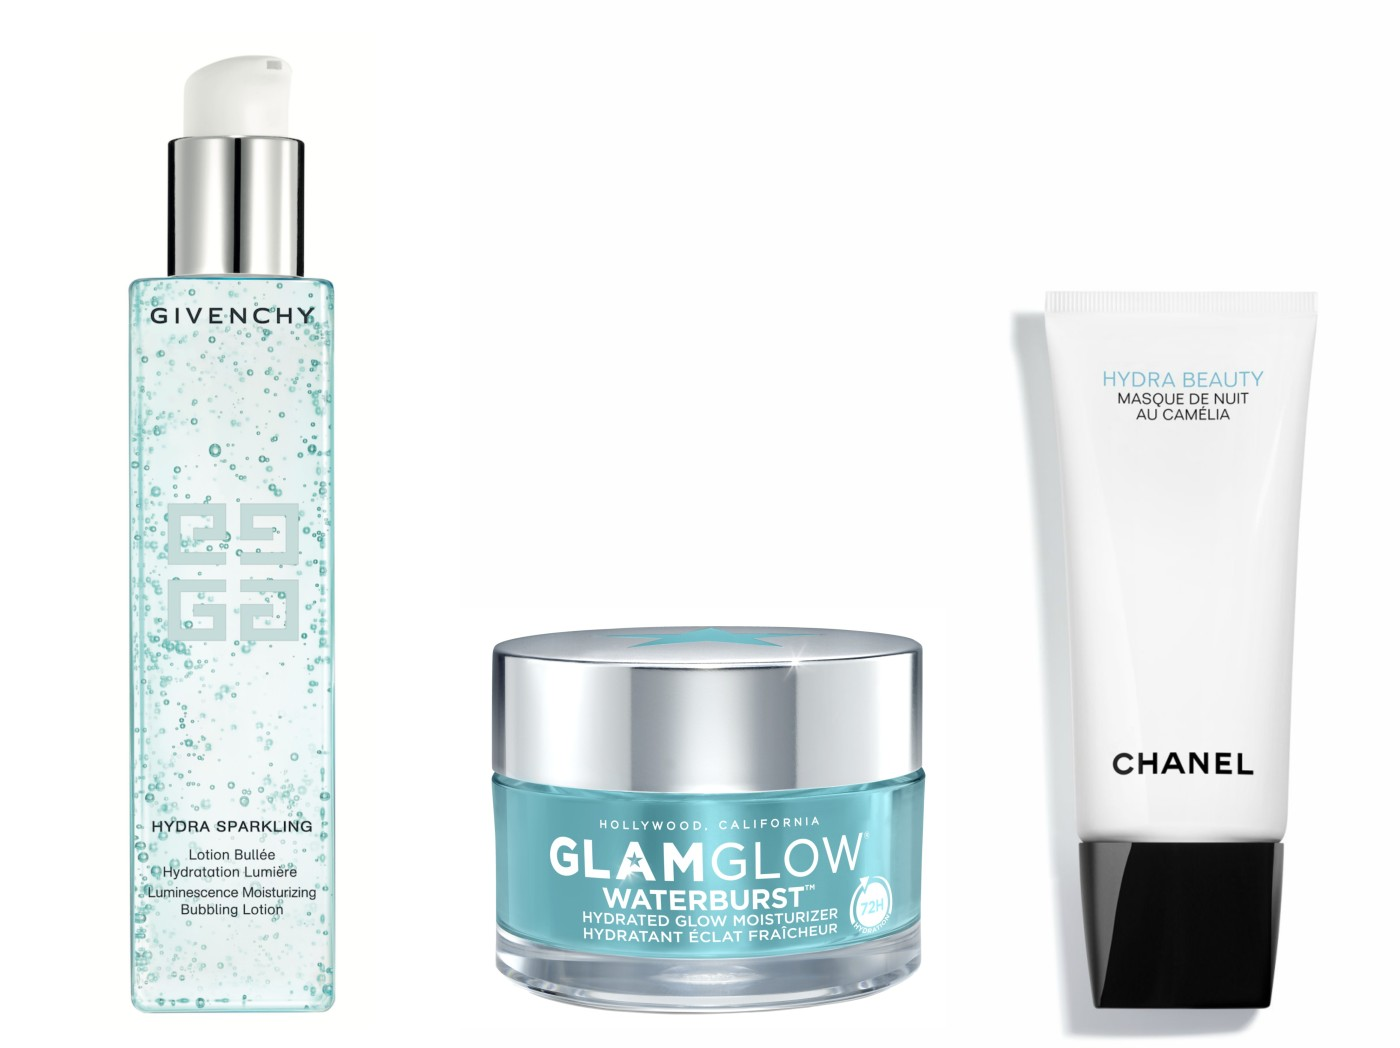 glamglow waterburst hydra beauty chanel givenchy hydra sparkling